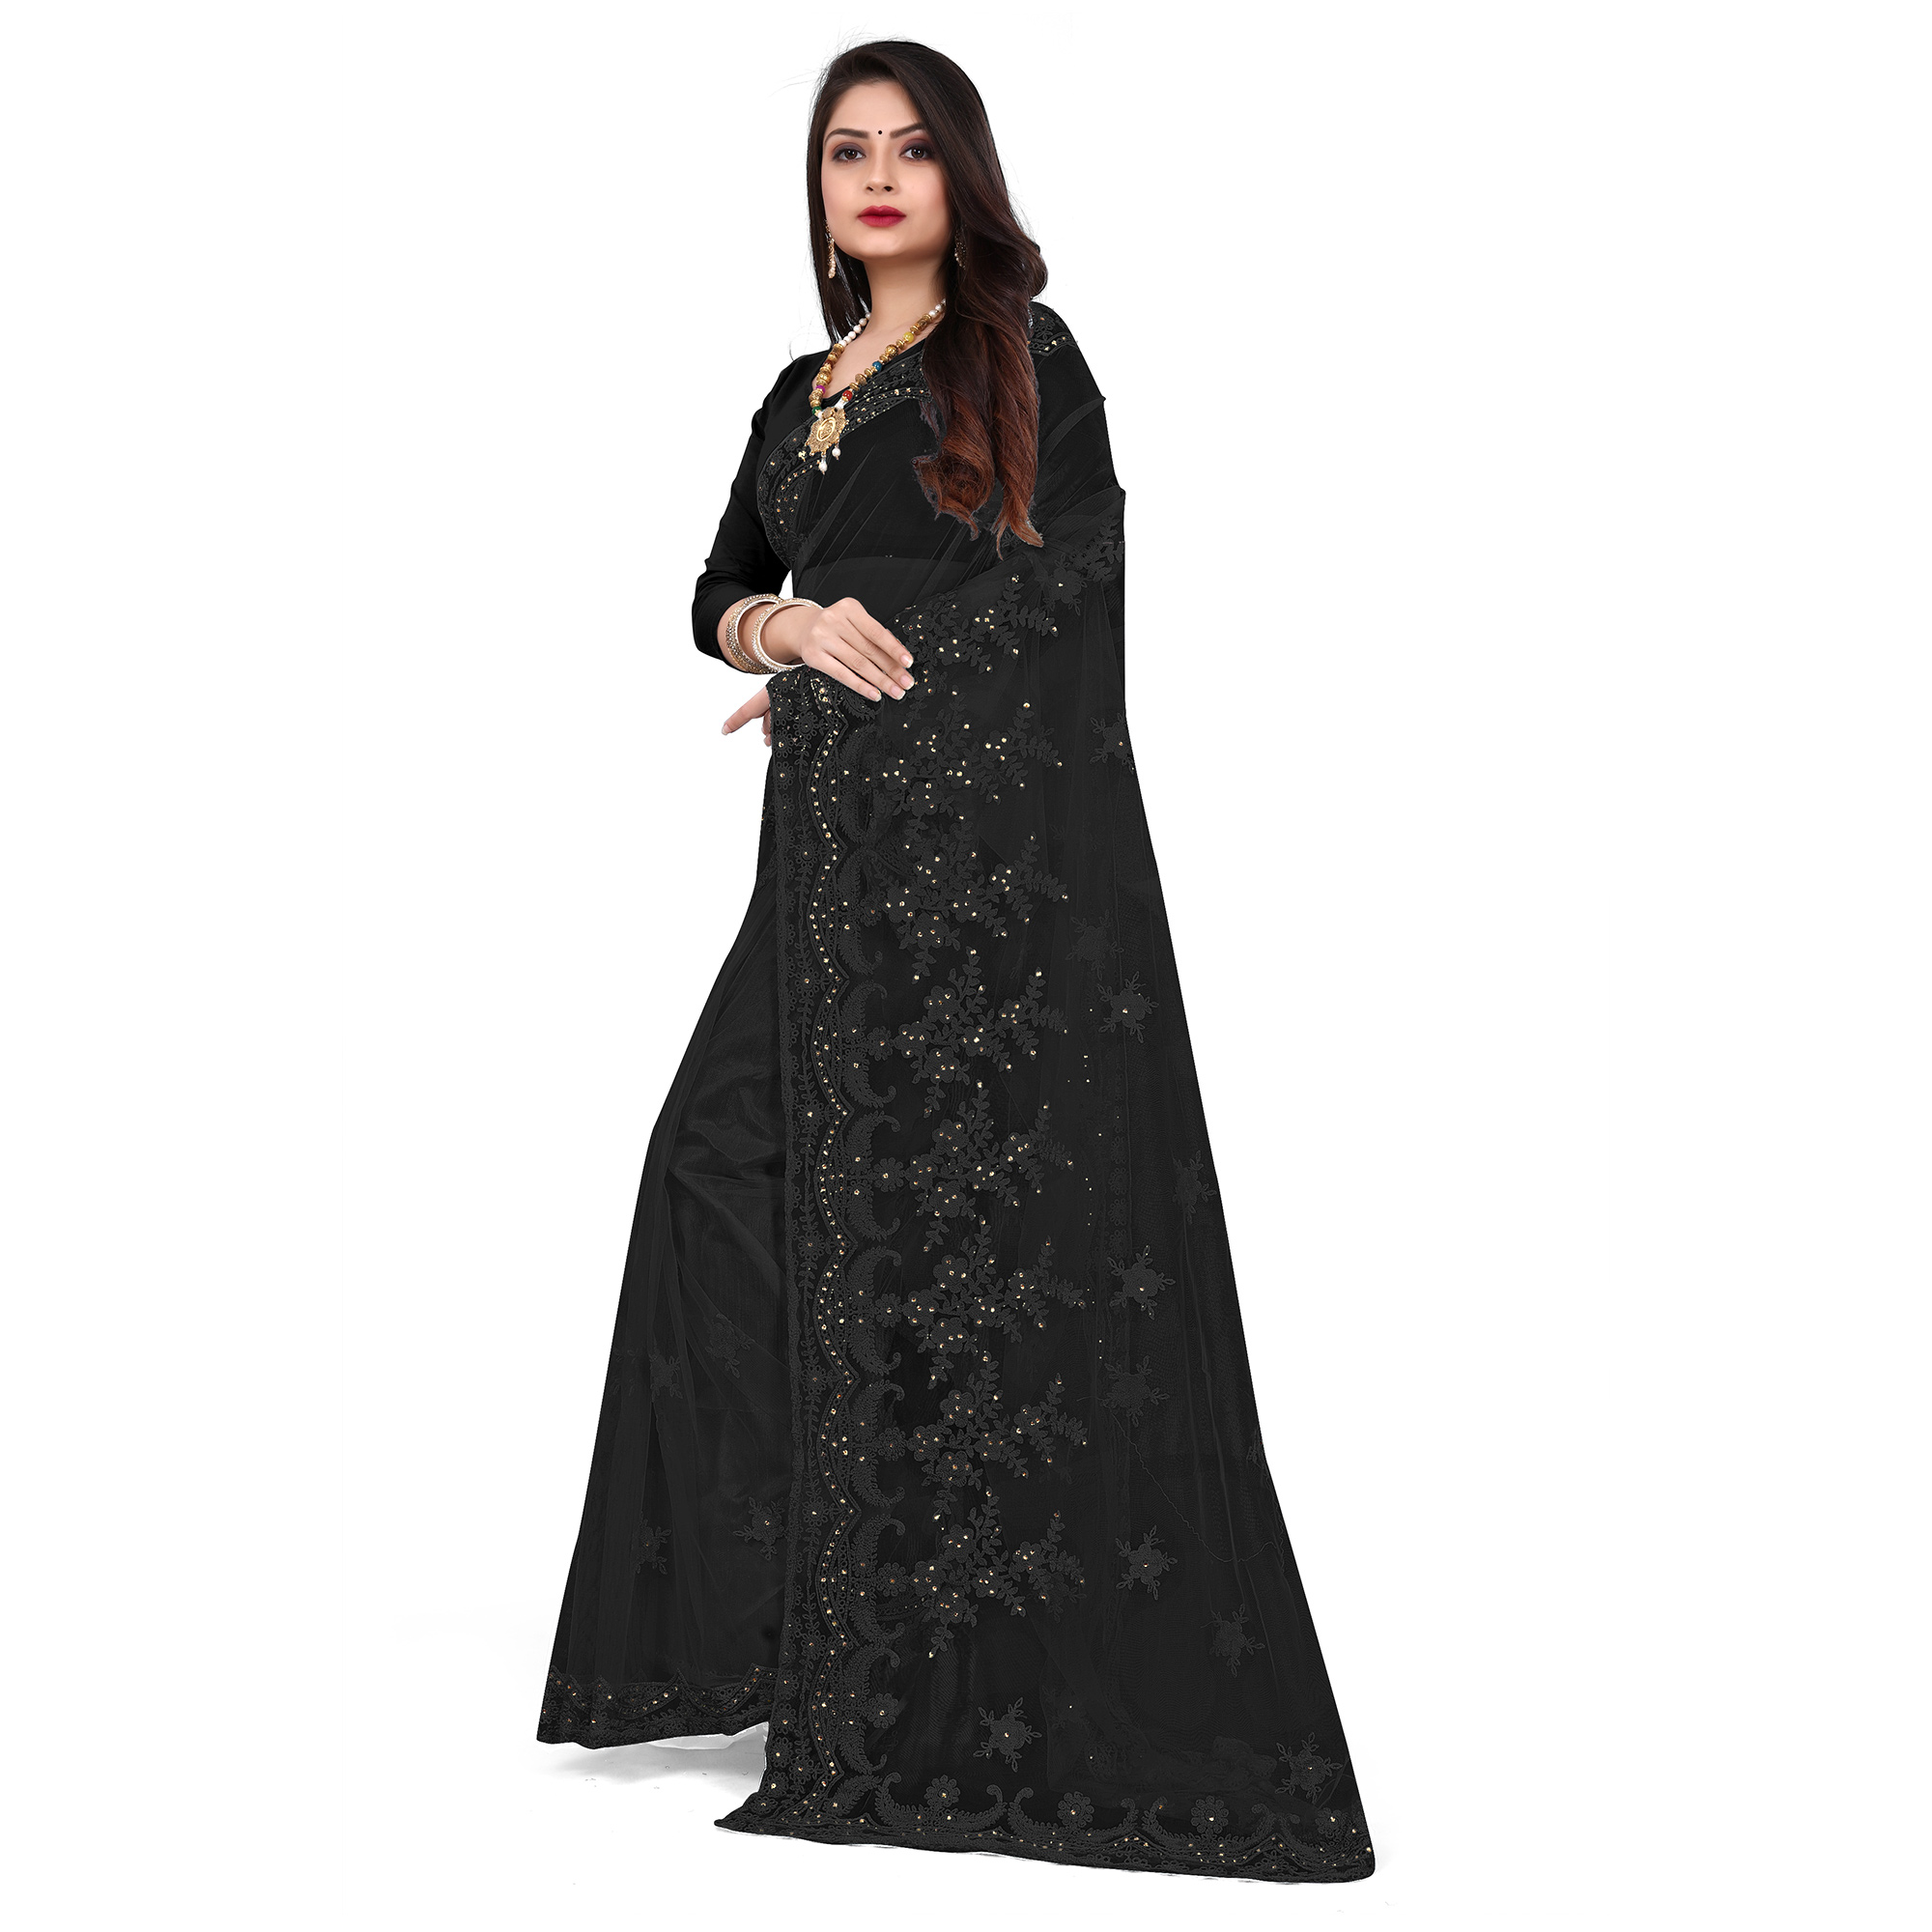 IRIS - Black Colored Partywear Embroidered & Stone Work Netted Saree